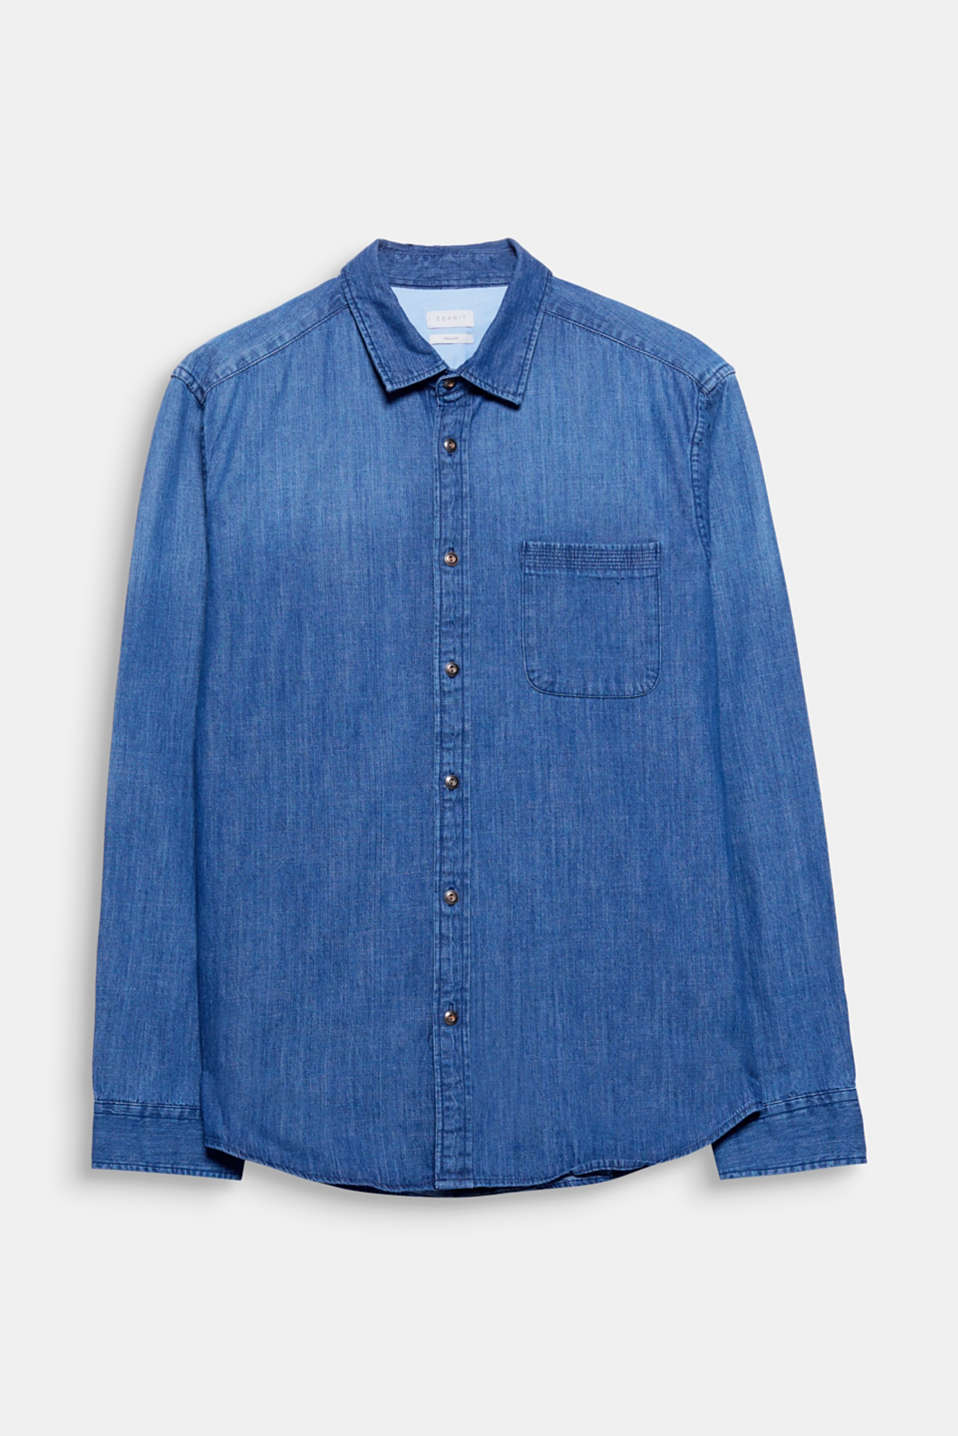 An urban classic: this denim shirt. This design wows with a slight melange finish and fine details.